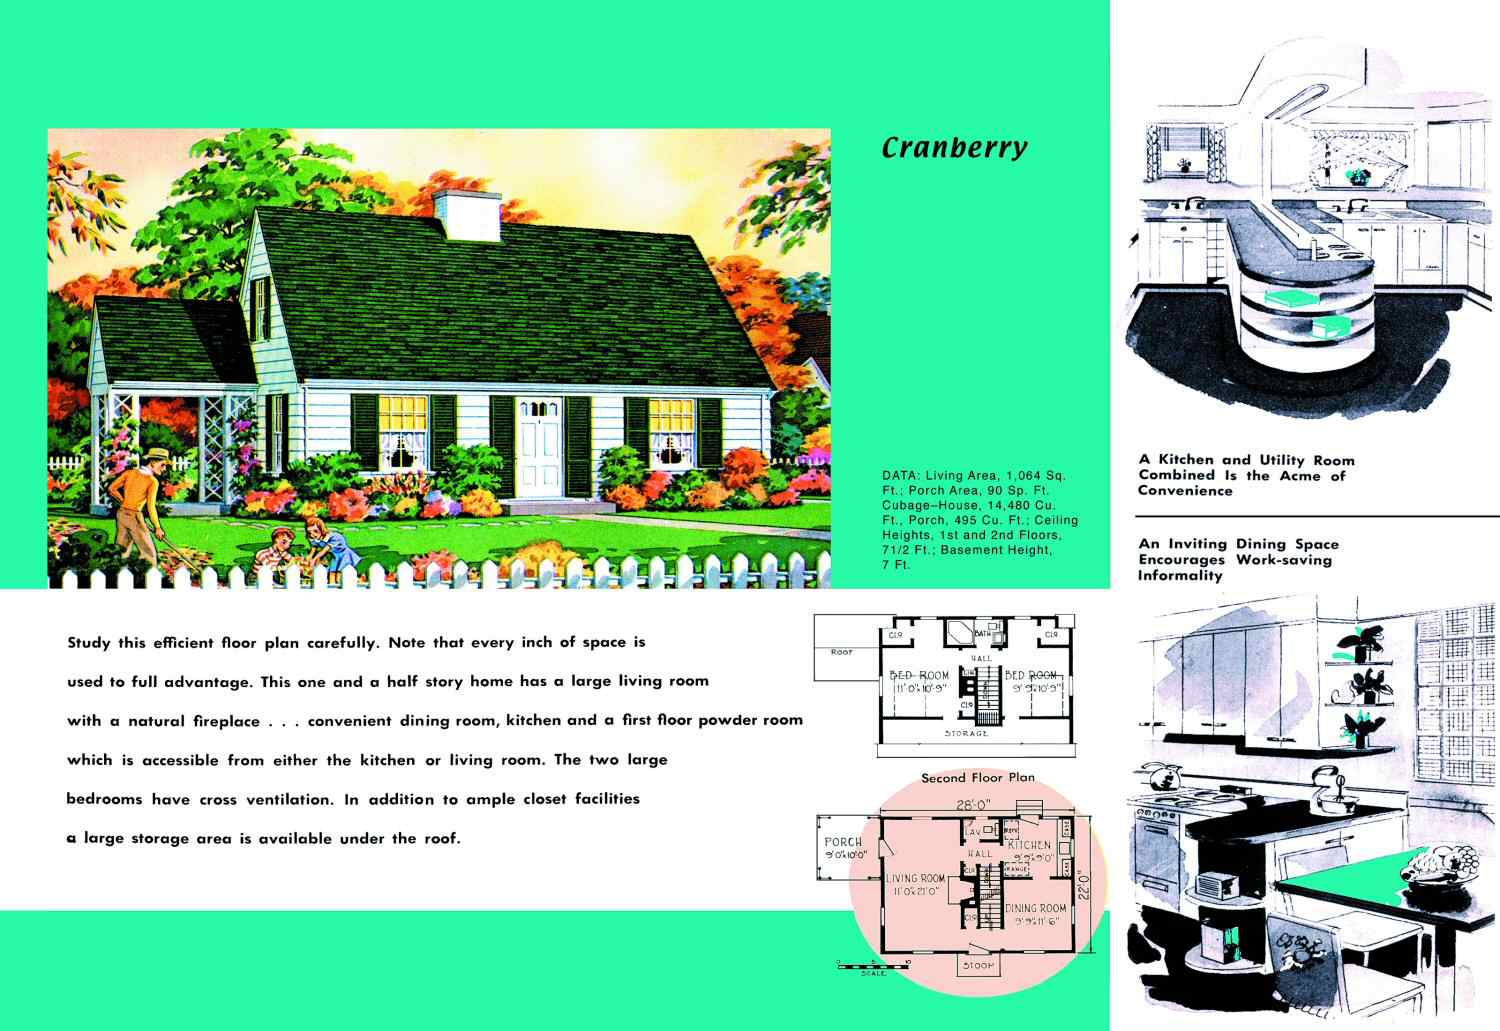 Cape Cod House Plans 1950s America Style Attic Room 2 Wiring Diagram Floor Plan And Rendering Of Called Cranberry